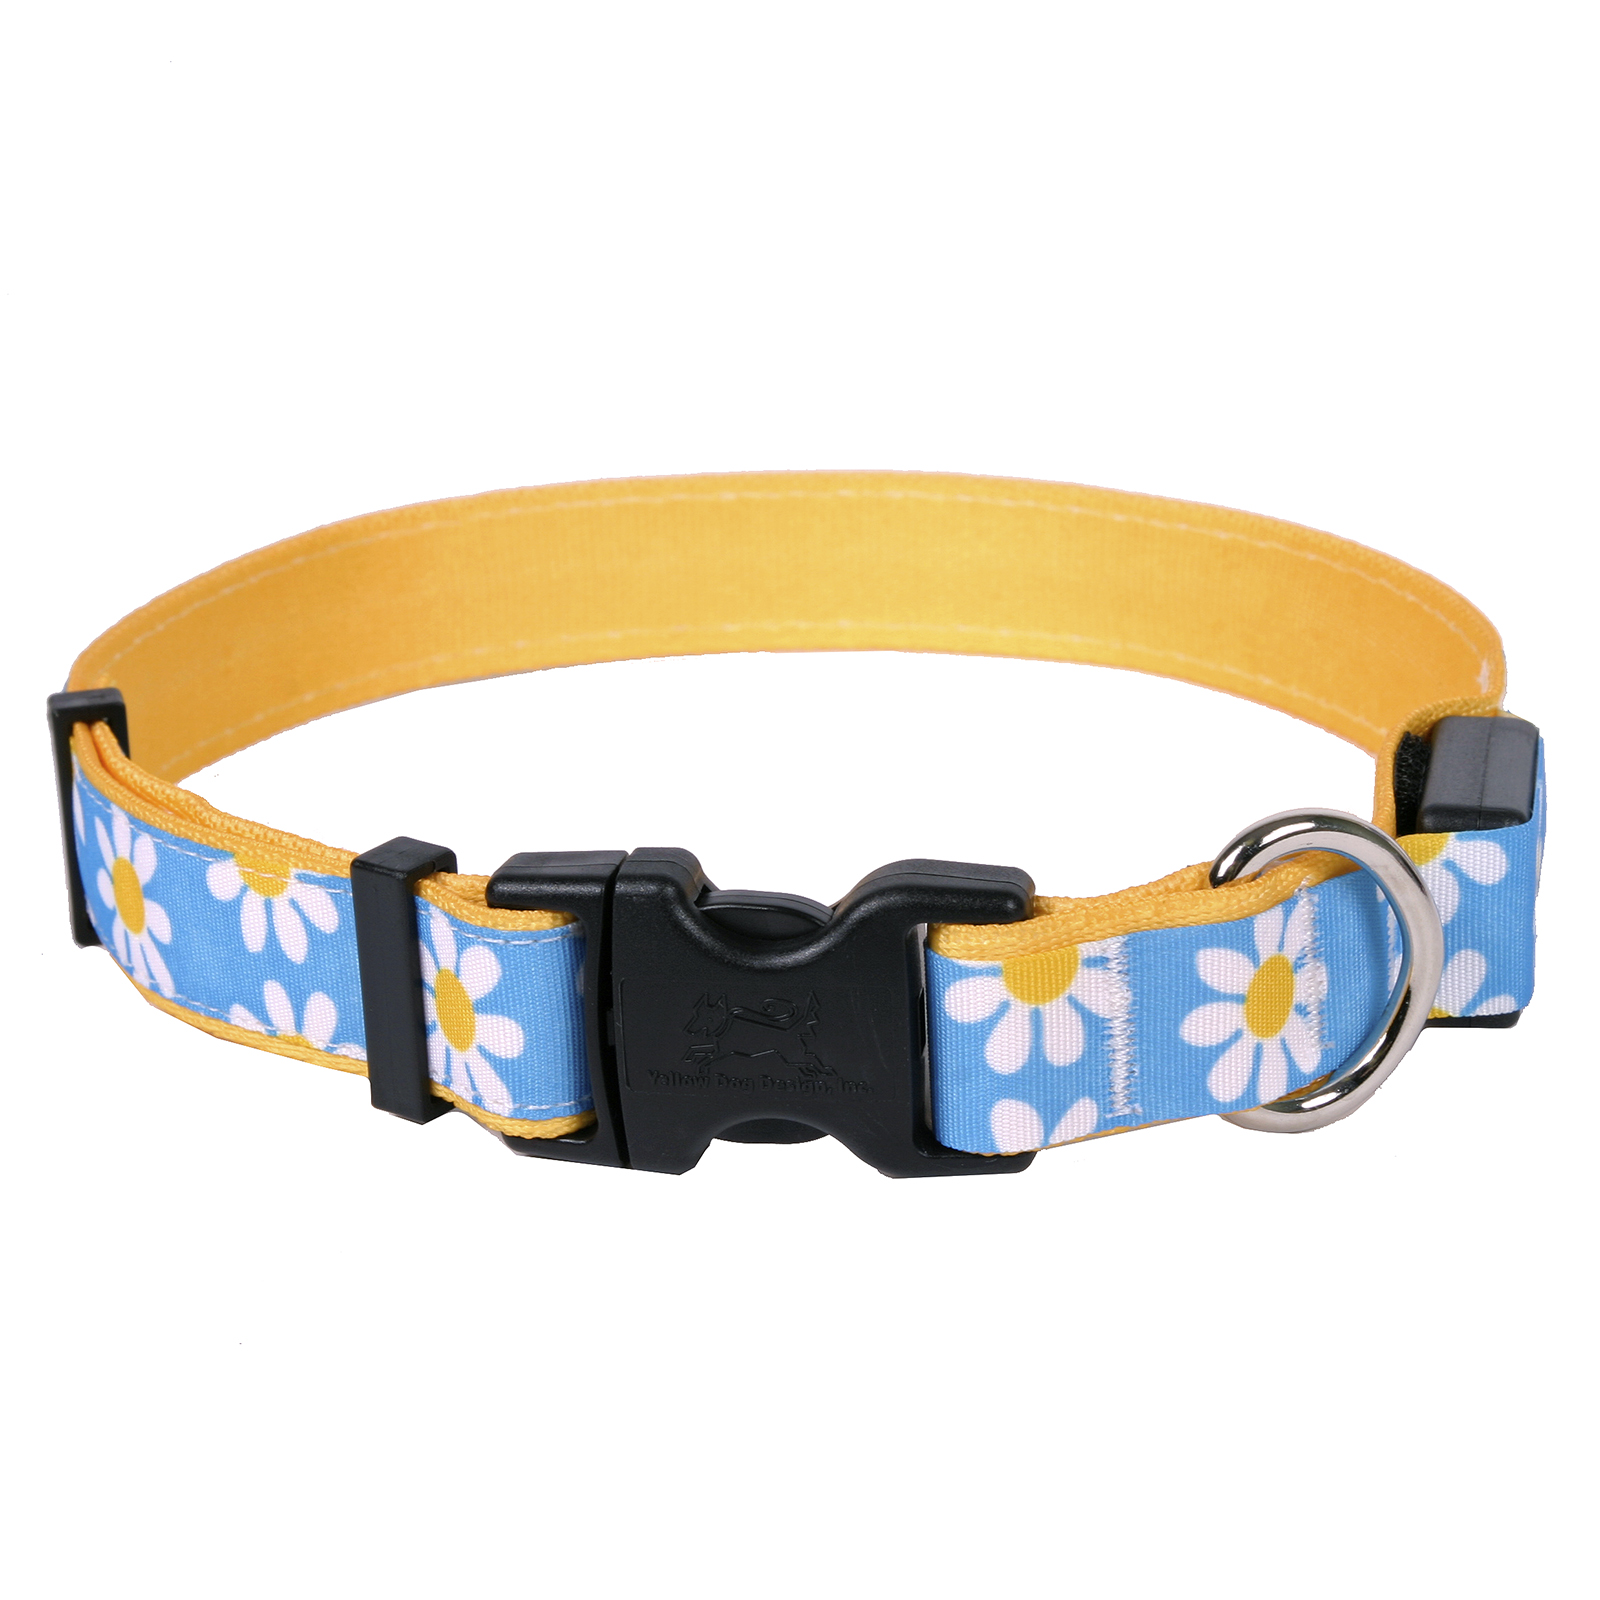 Blue Daisy ORION LED Dog Collar